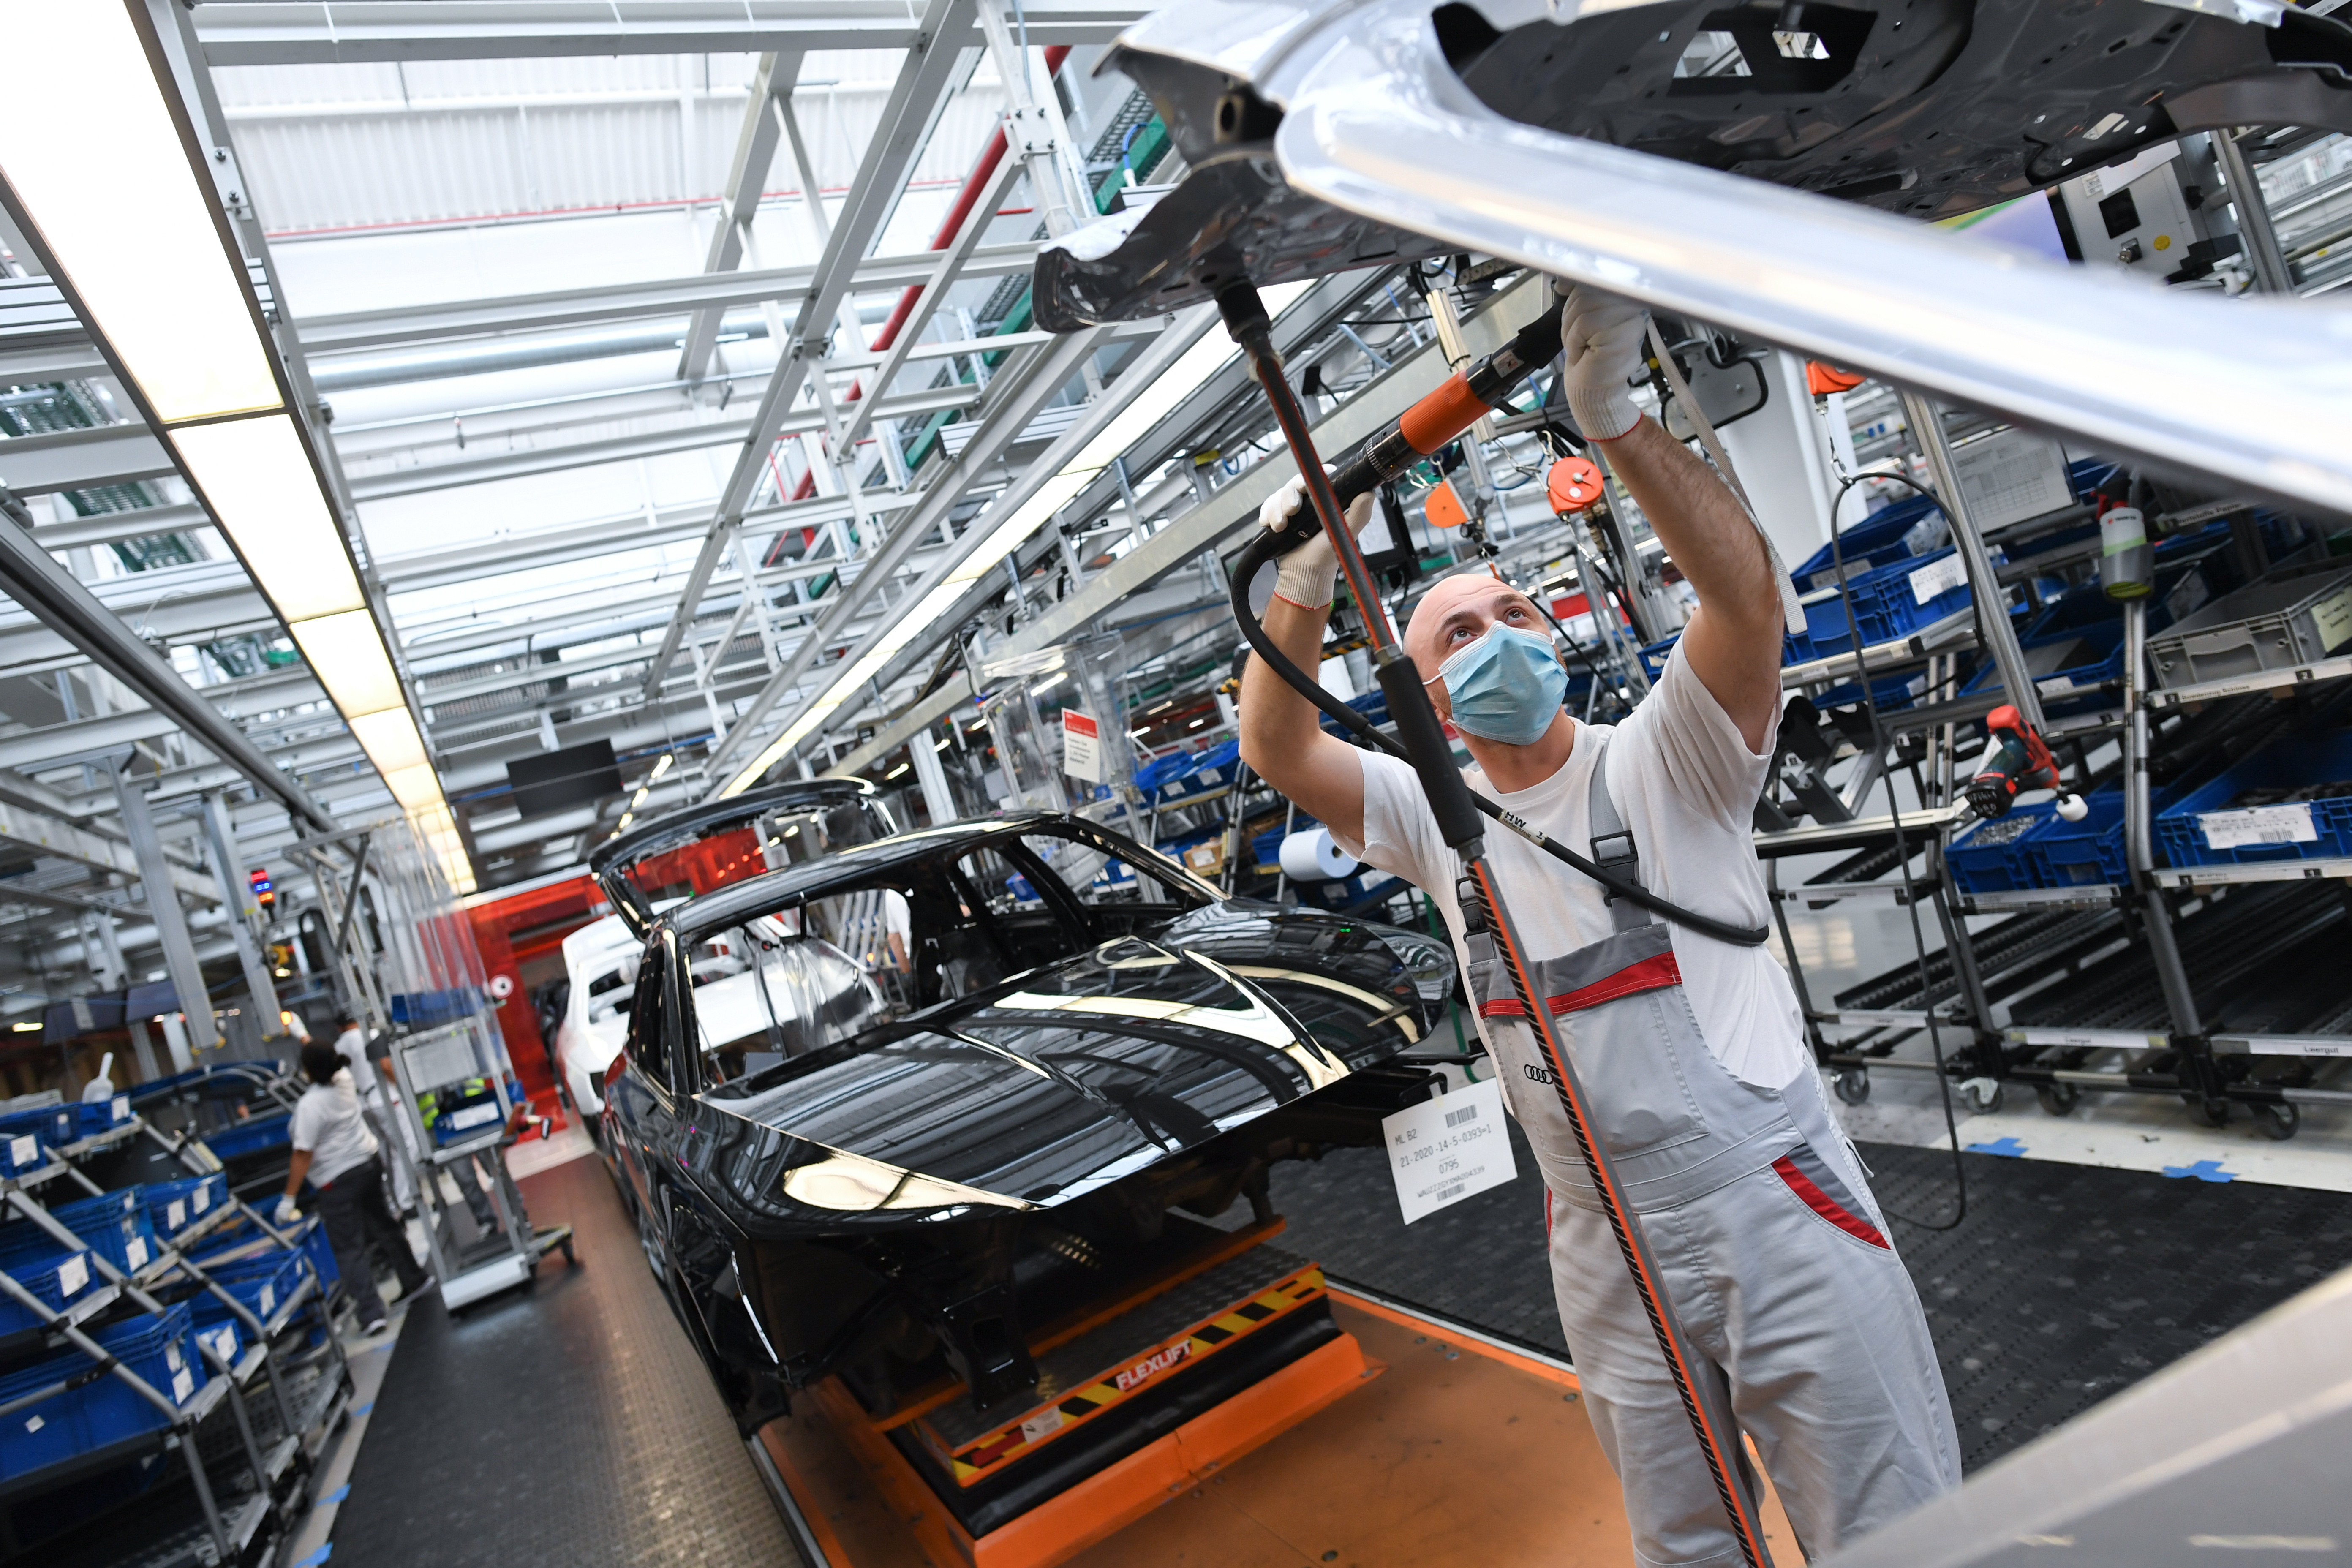 An employee works at the A3 and A4 production line of the German car manufacturer Audi in Ingolstadt, Germany, June 3, 2020.